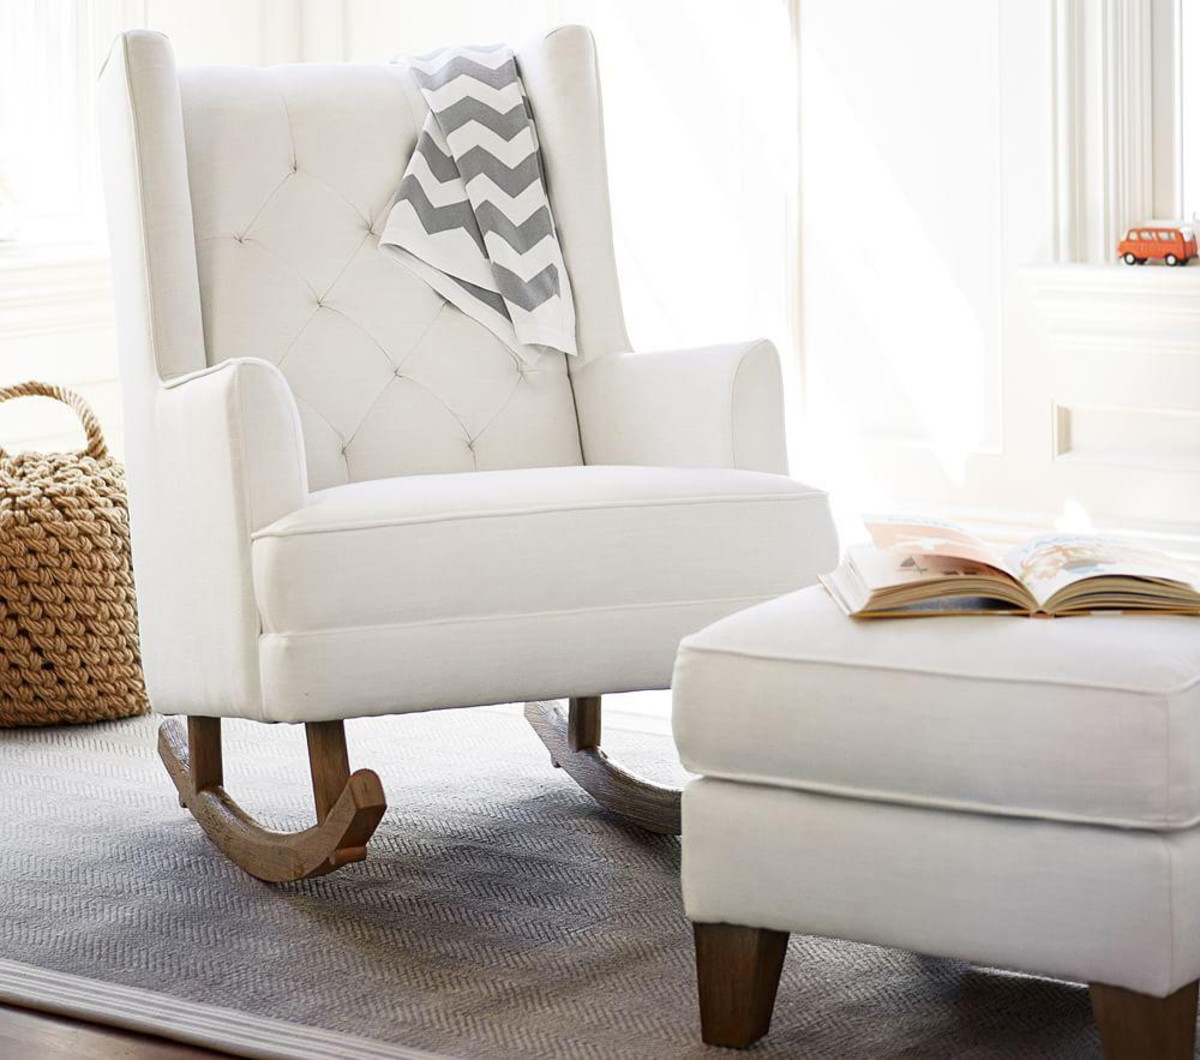 Fantastic Modern Rocking Chair Nursery White Royals Courage Bralicious Painted Fabric Chair Ideas Braliciousco